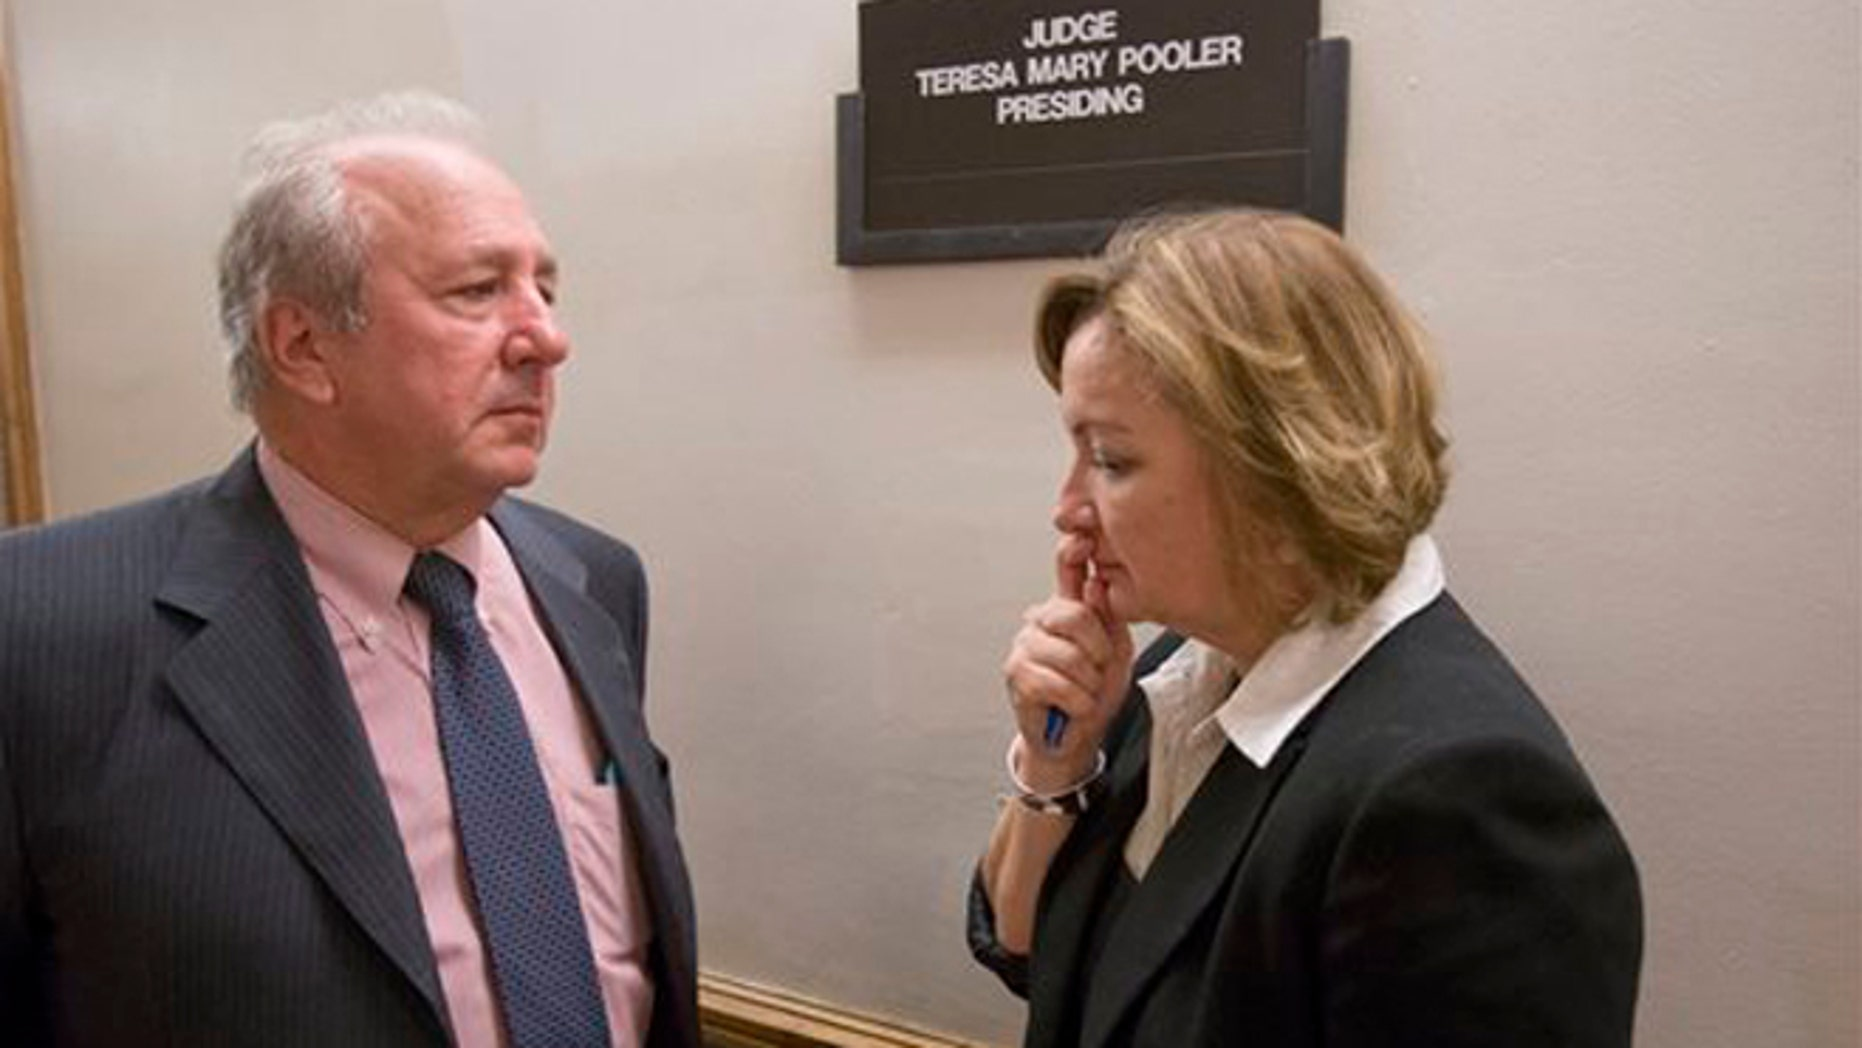 Canadian diplomat Roxanne Dube, right, speaks with attorney Curt Obront outside a courtroom at the Richard E. Gerstein Justice Building, Thursday, Feb. 4, 2016, in Miami. Dube's son, Marc Wabafiyebazu, 15, is charged with murder and other crimes in the March 30, 2015, drug-related South Florida shootout that killed his older brother and another youth. (AP Photo/Wilfredo Lee)